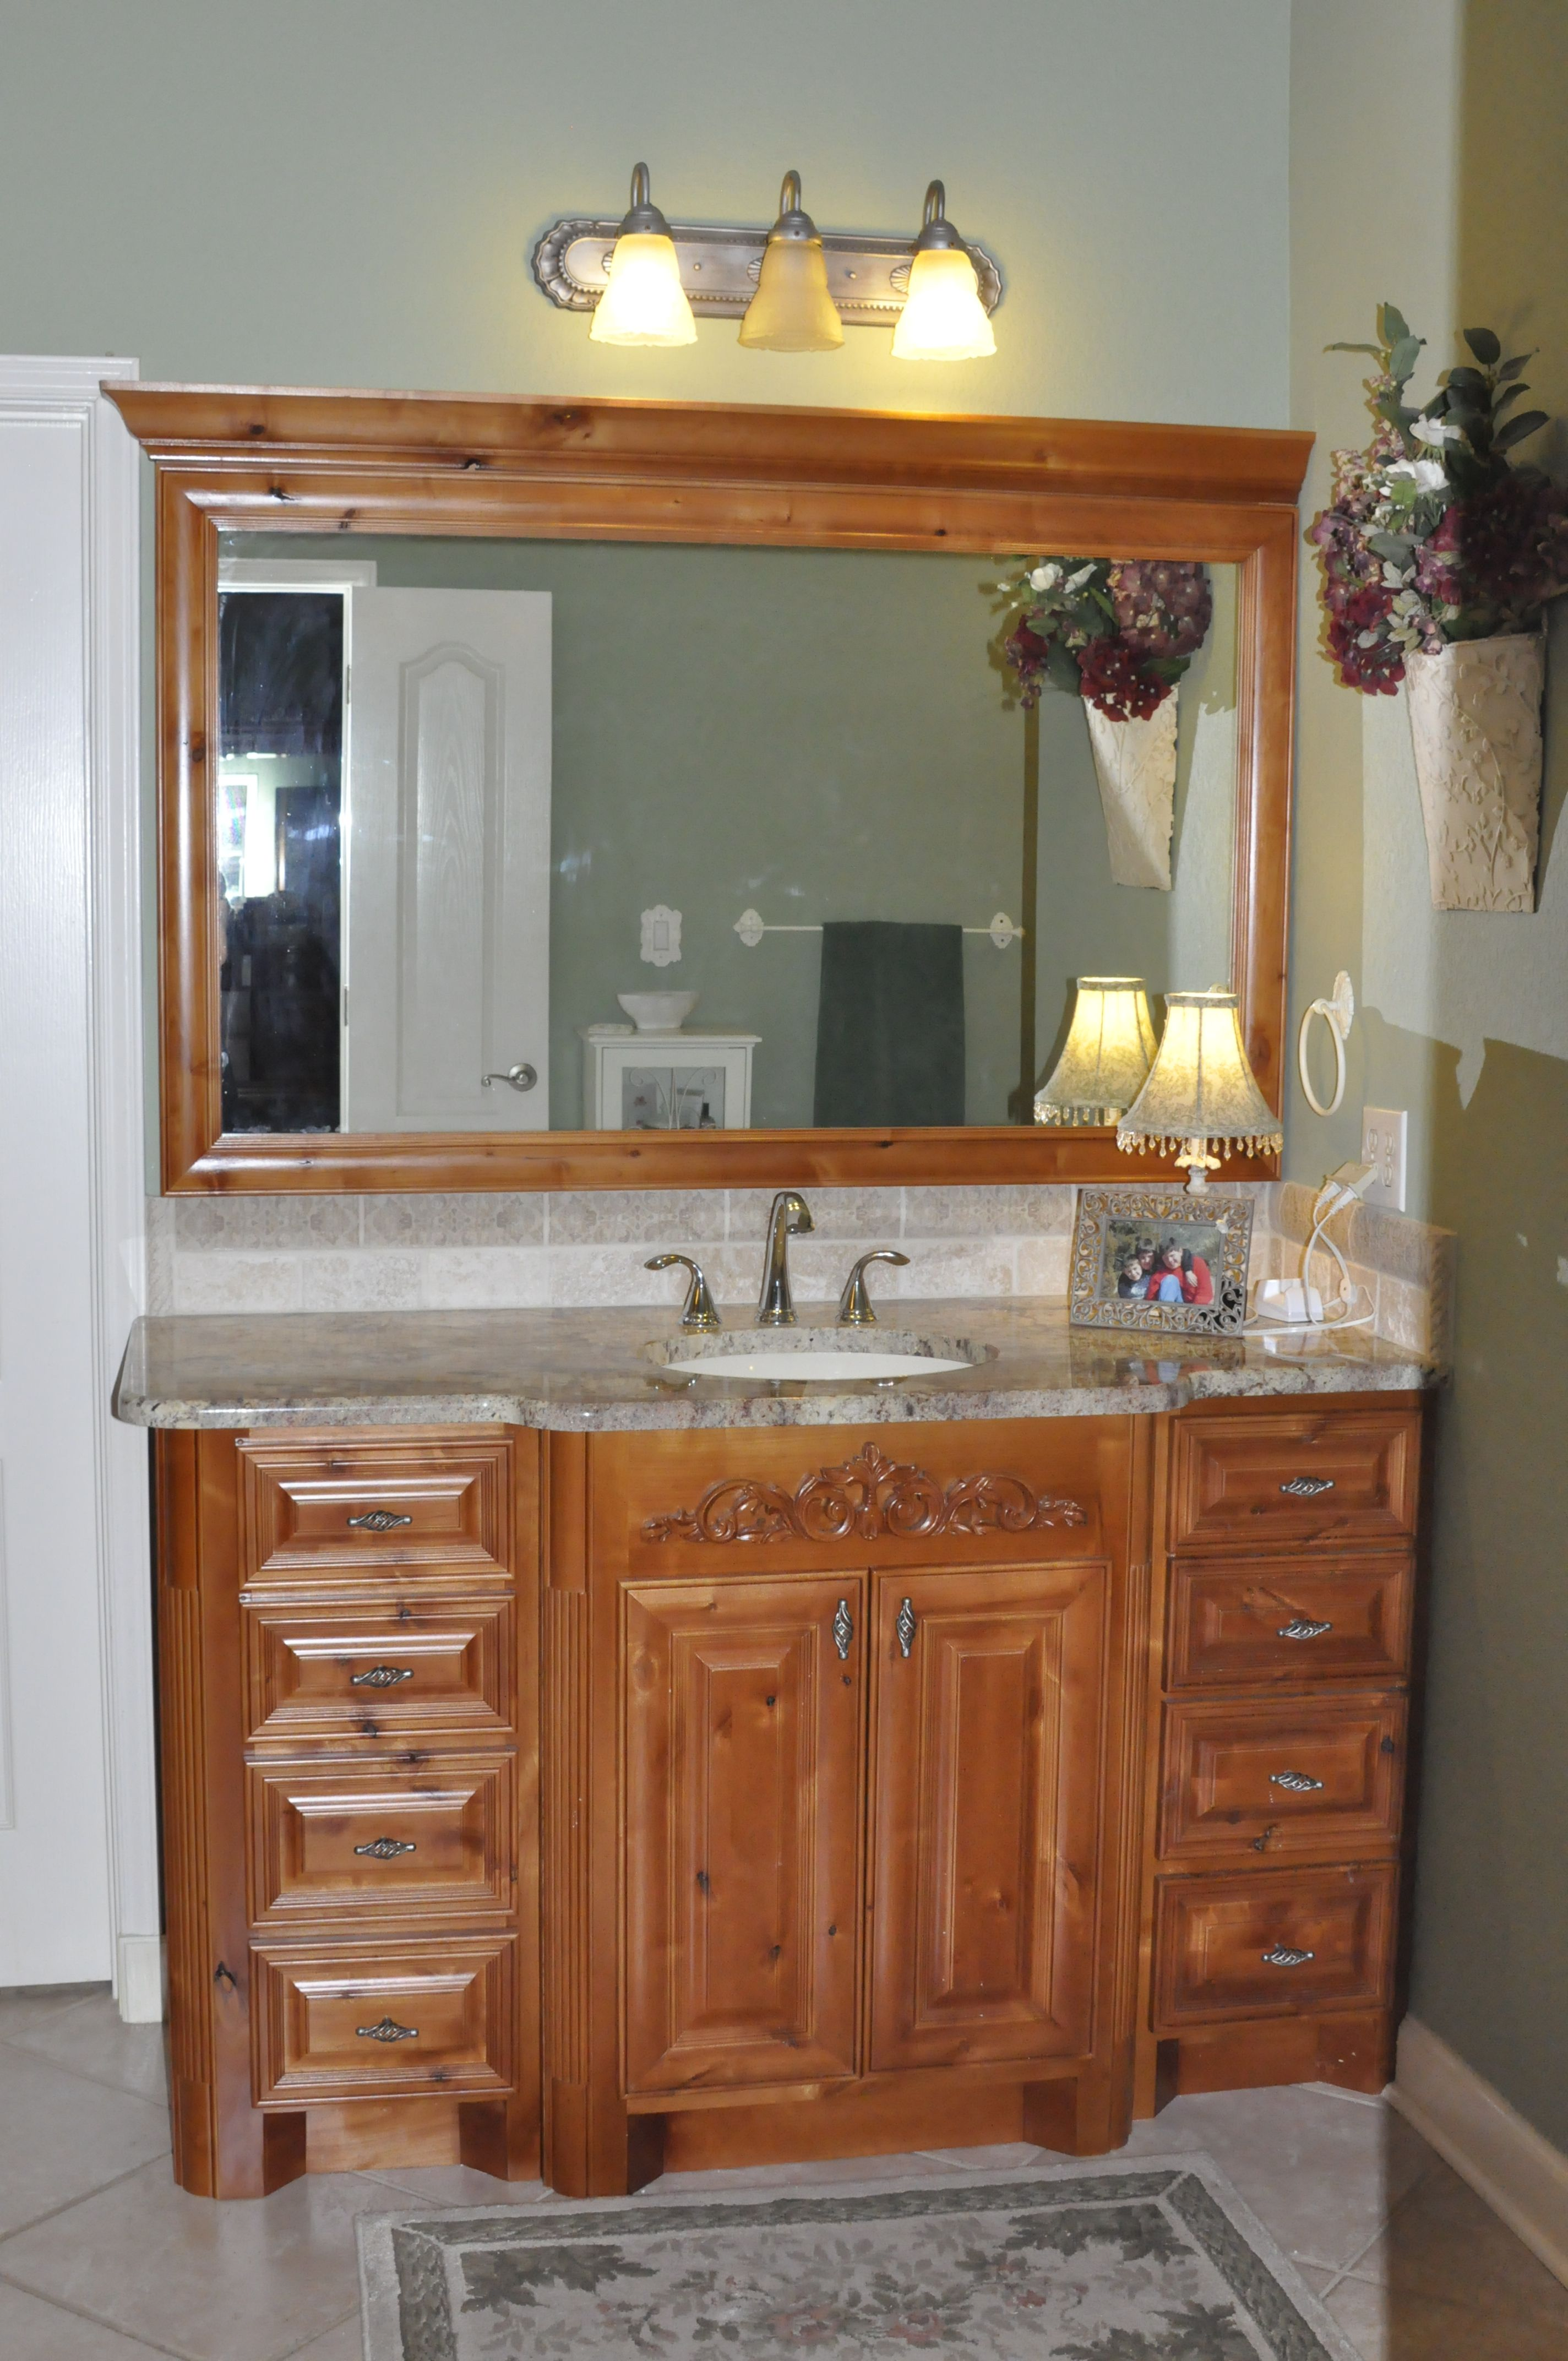 Knotty Alder Wood Cabinets Knotty Alder Wood Cabinets Stained A Golden Oak Bathroom